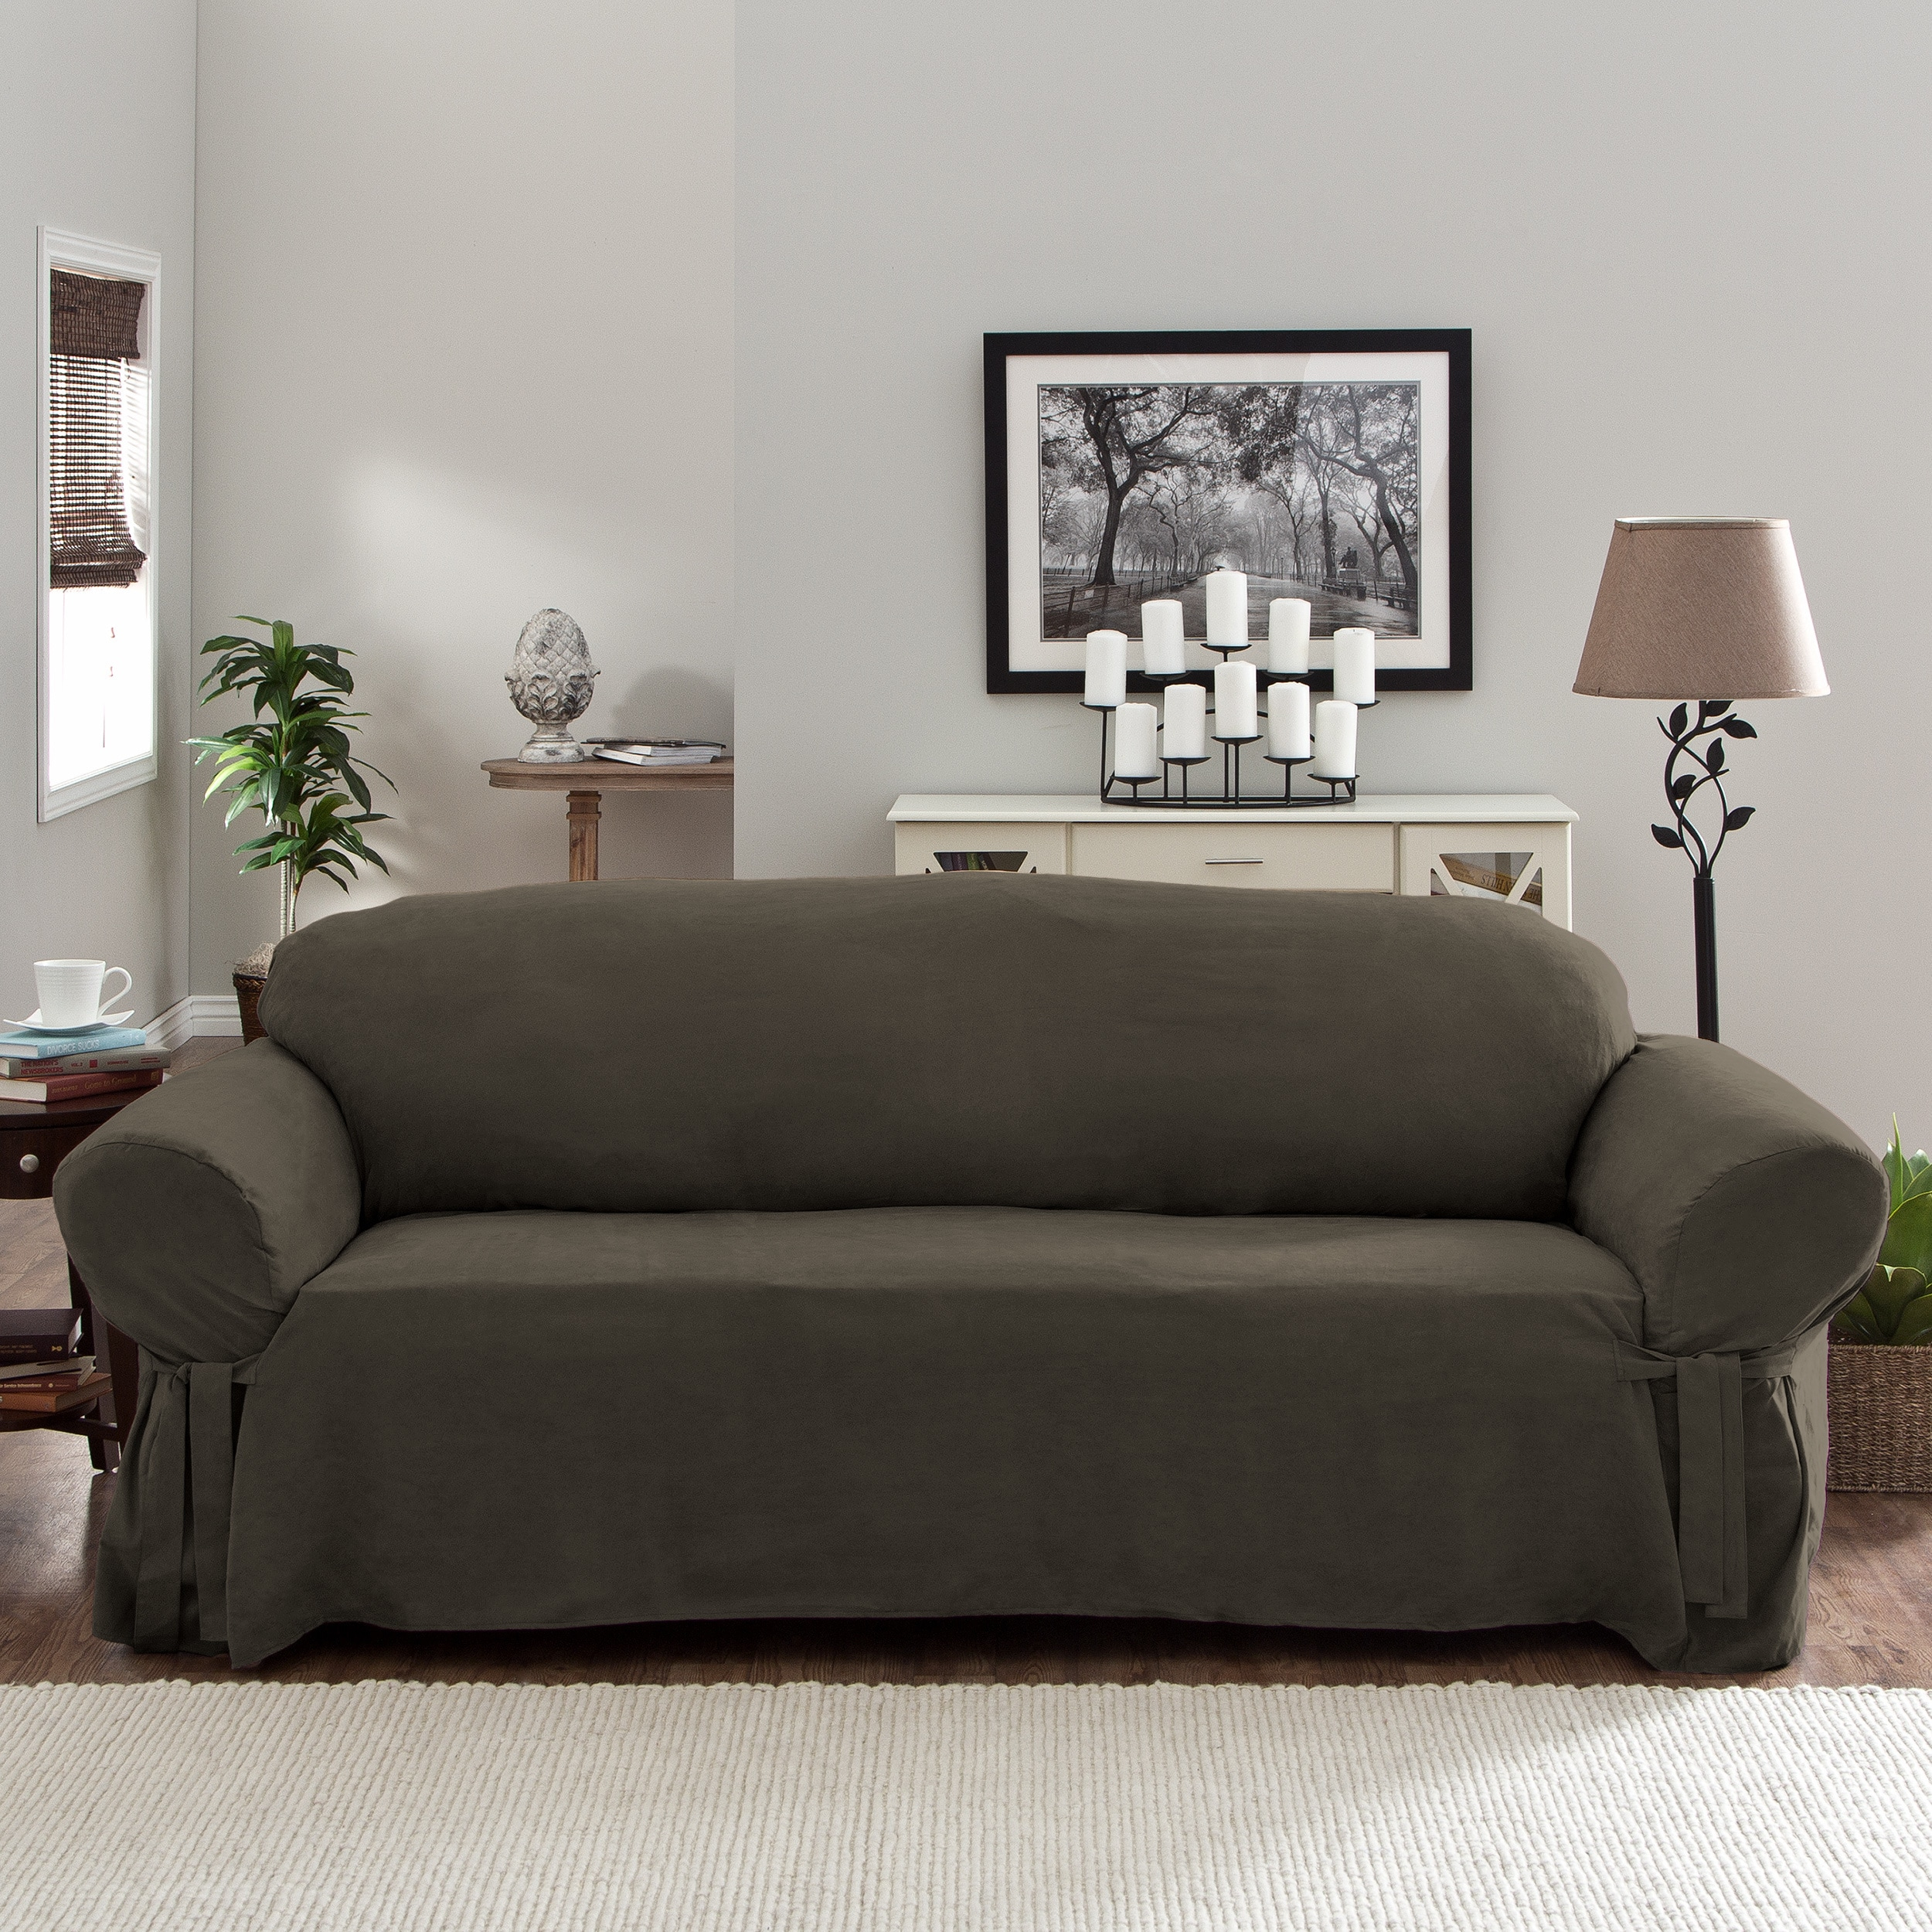 Tailor Fit Relaxed Fit Smooth Suede Sofa Slipcover Free Shipping